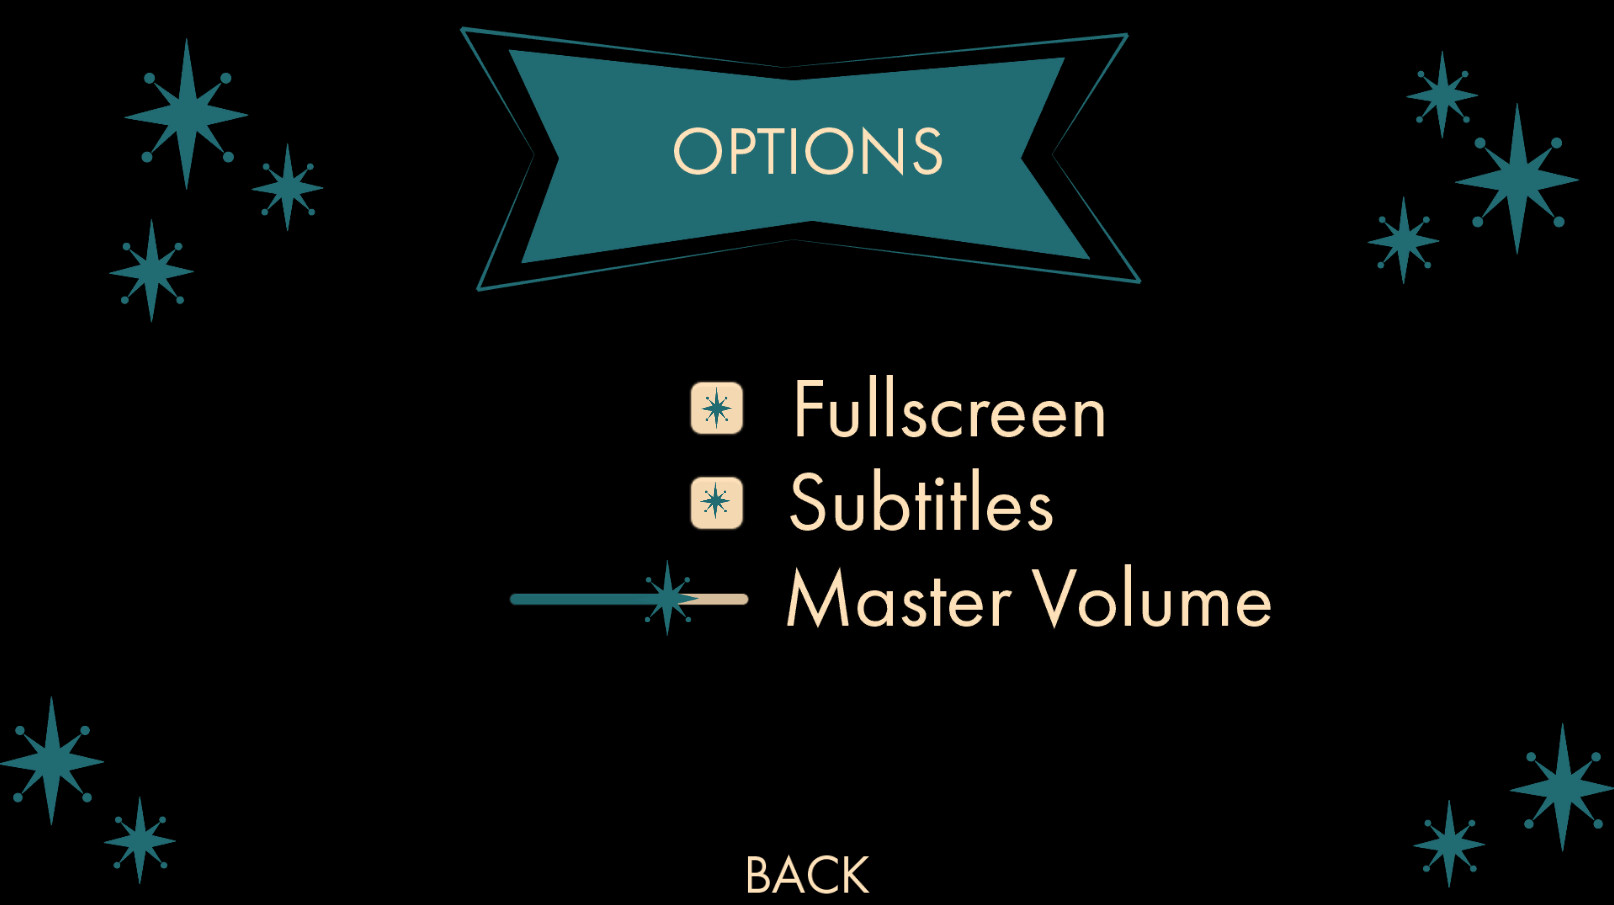 Options Menu includes a toggle for Fullscreen and Subtitles. There is also a slider for the Master Volume.